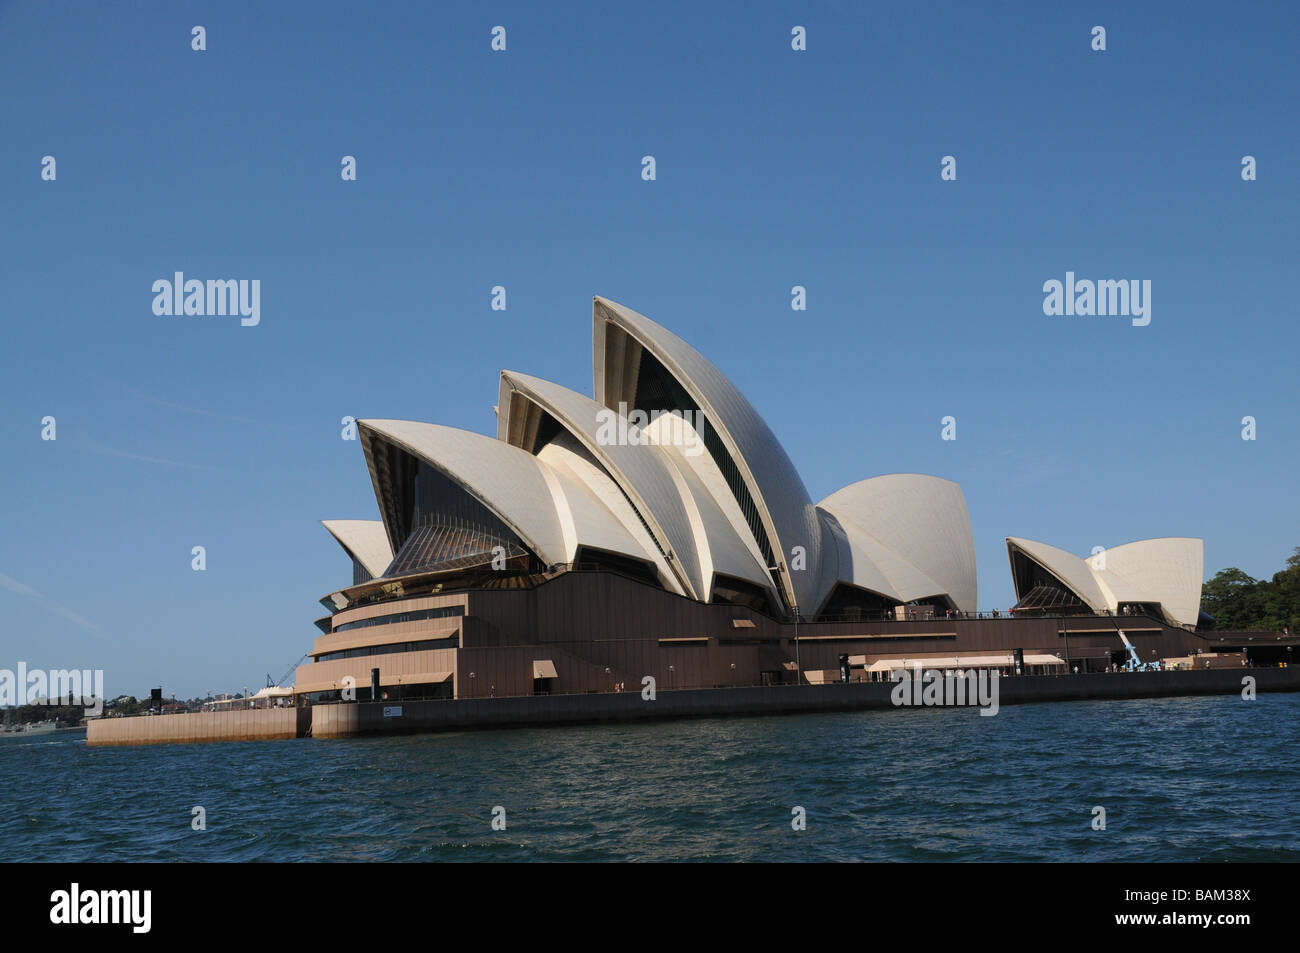 Sydney, Australia, View of Opera House built in 2003, designed by Jorn Utzon, one of the word's most distinctive - Stock Image